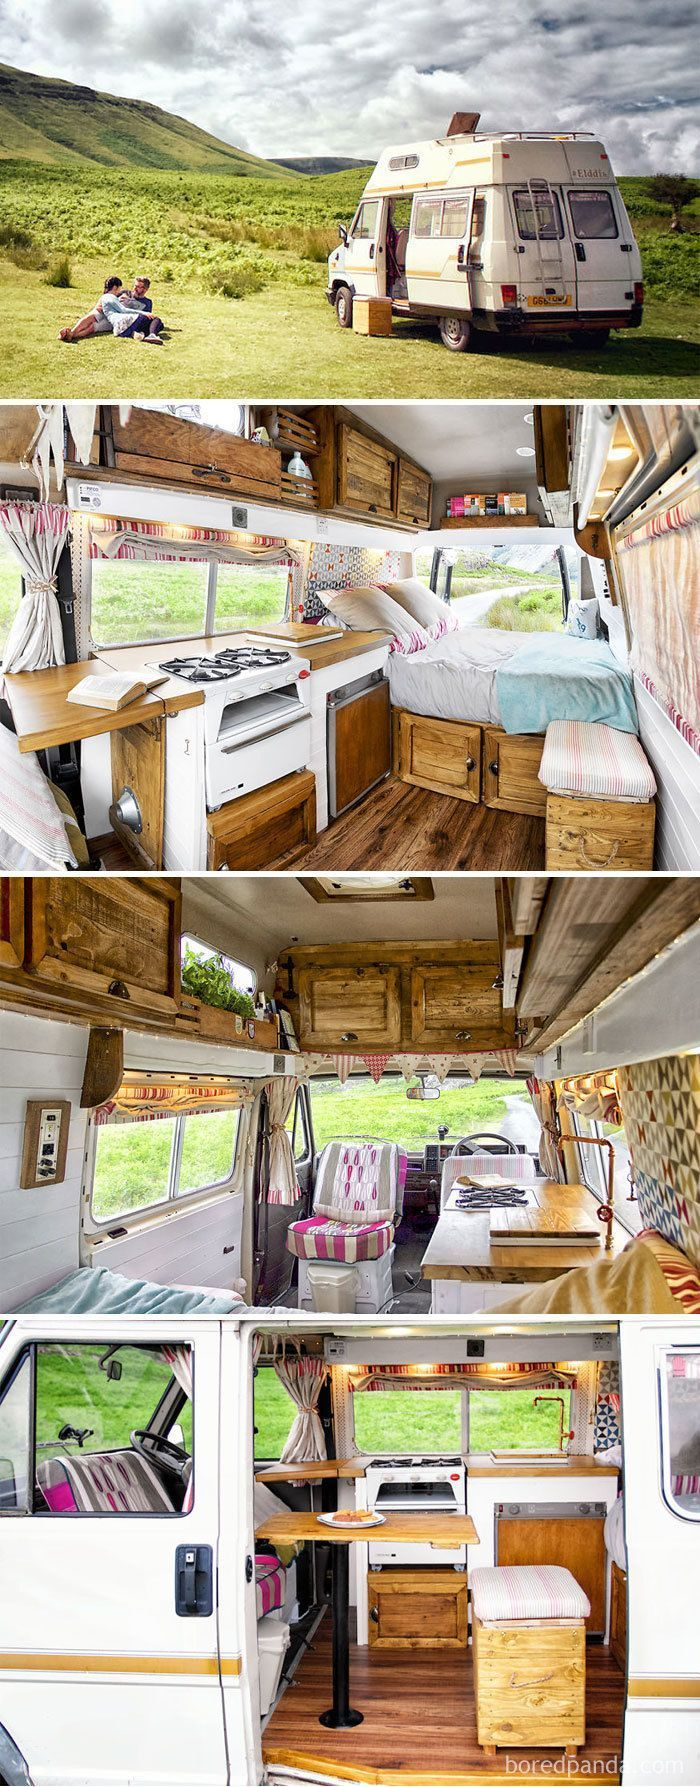 We Transformed This Camper Van In 6 Weeks With Only £1000